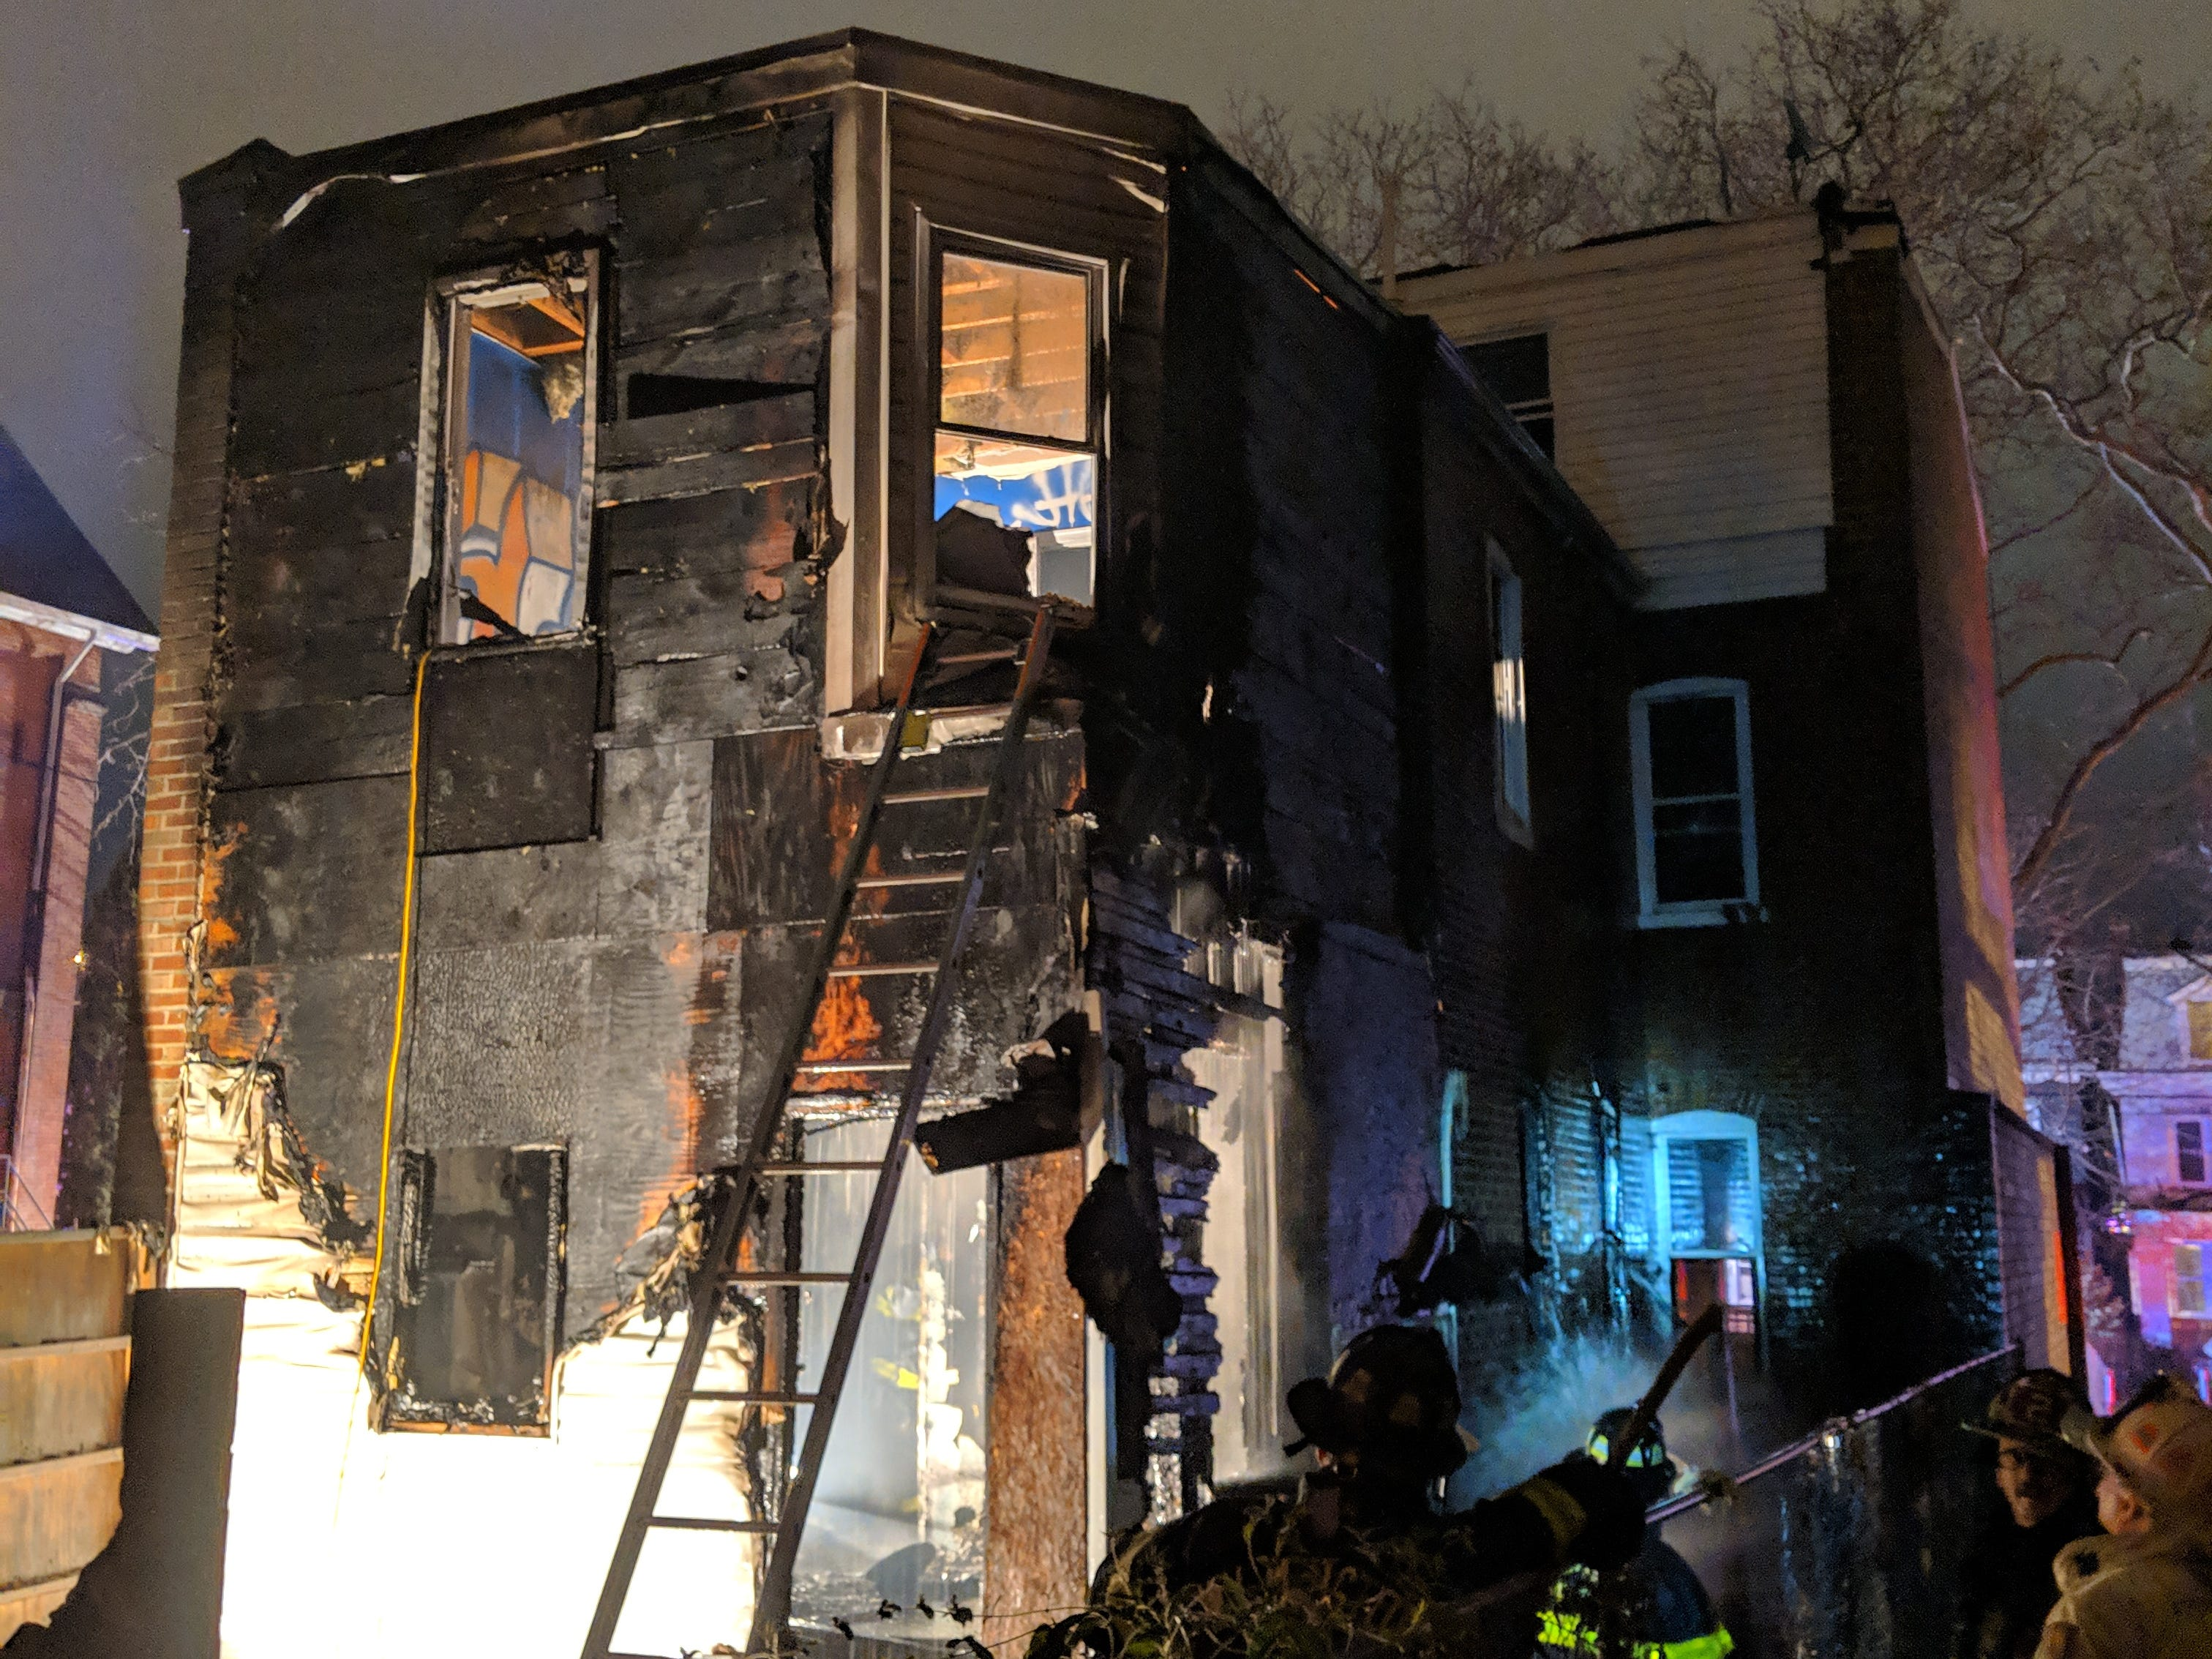 Wilmington firefighters work at the scene of a house fire in a vacant home on the 300 block of N. Broom Street, reported shortly after 9 p.m. There were no reports of injuries.